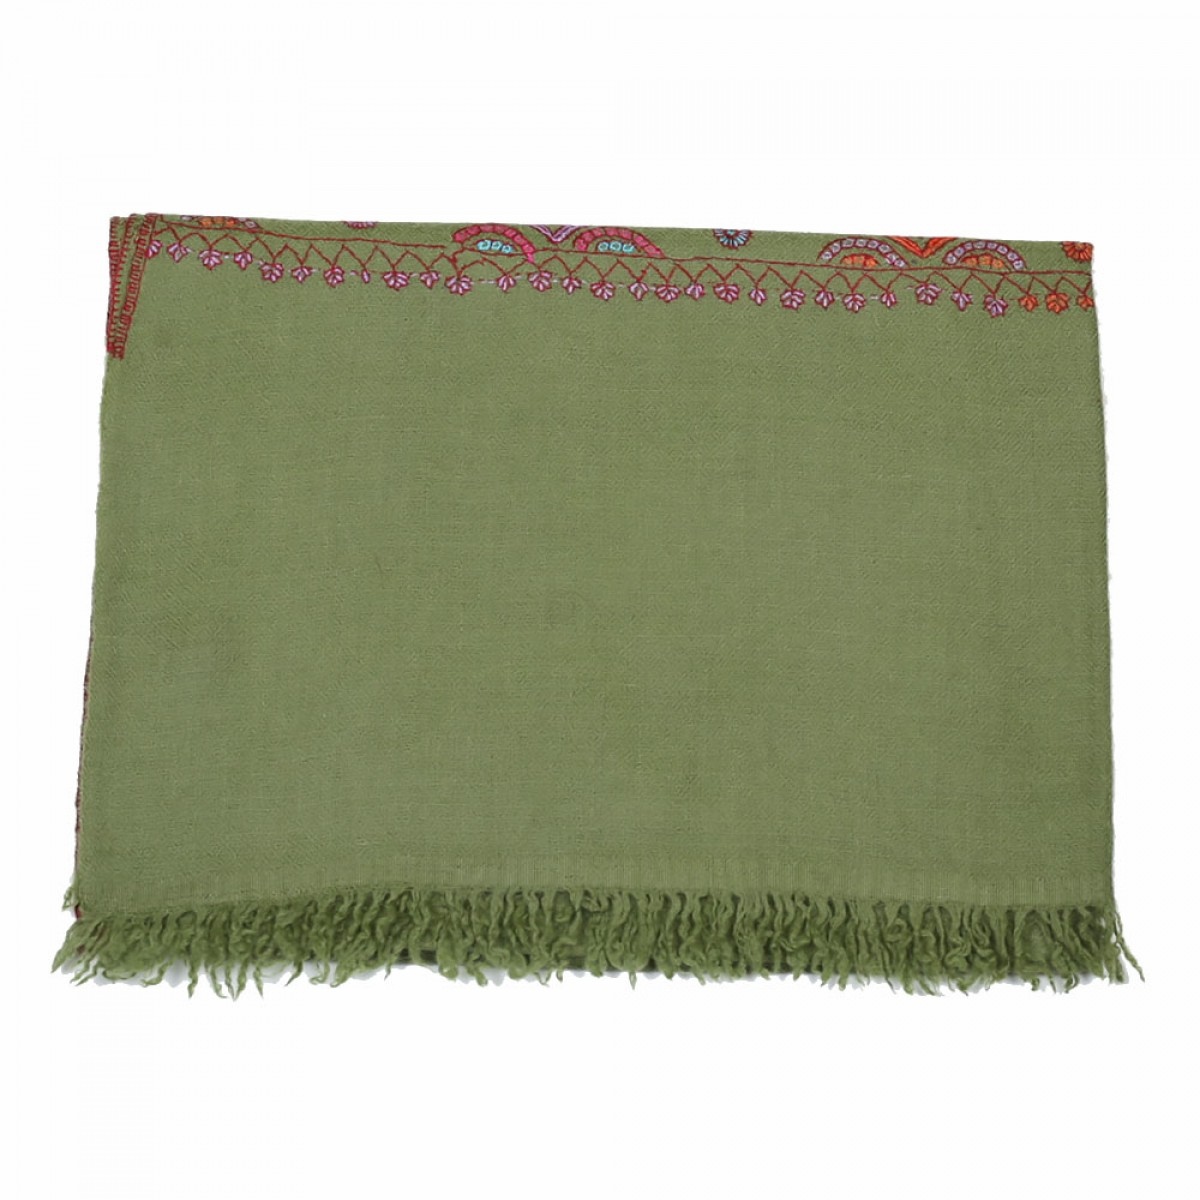 Embroidered Handloom Pashmina Stole - Pickle Green